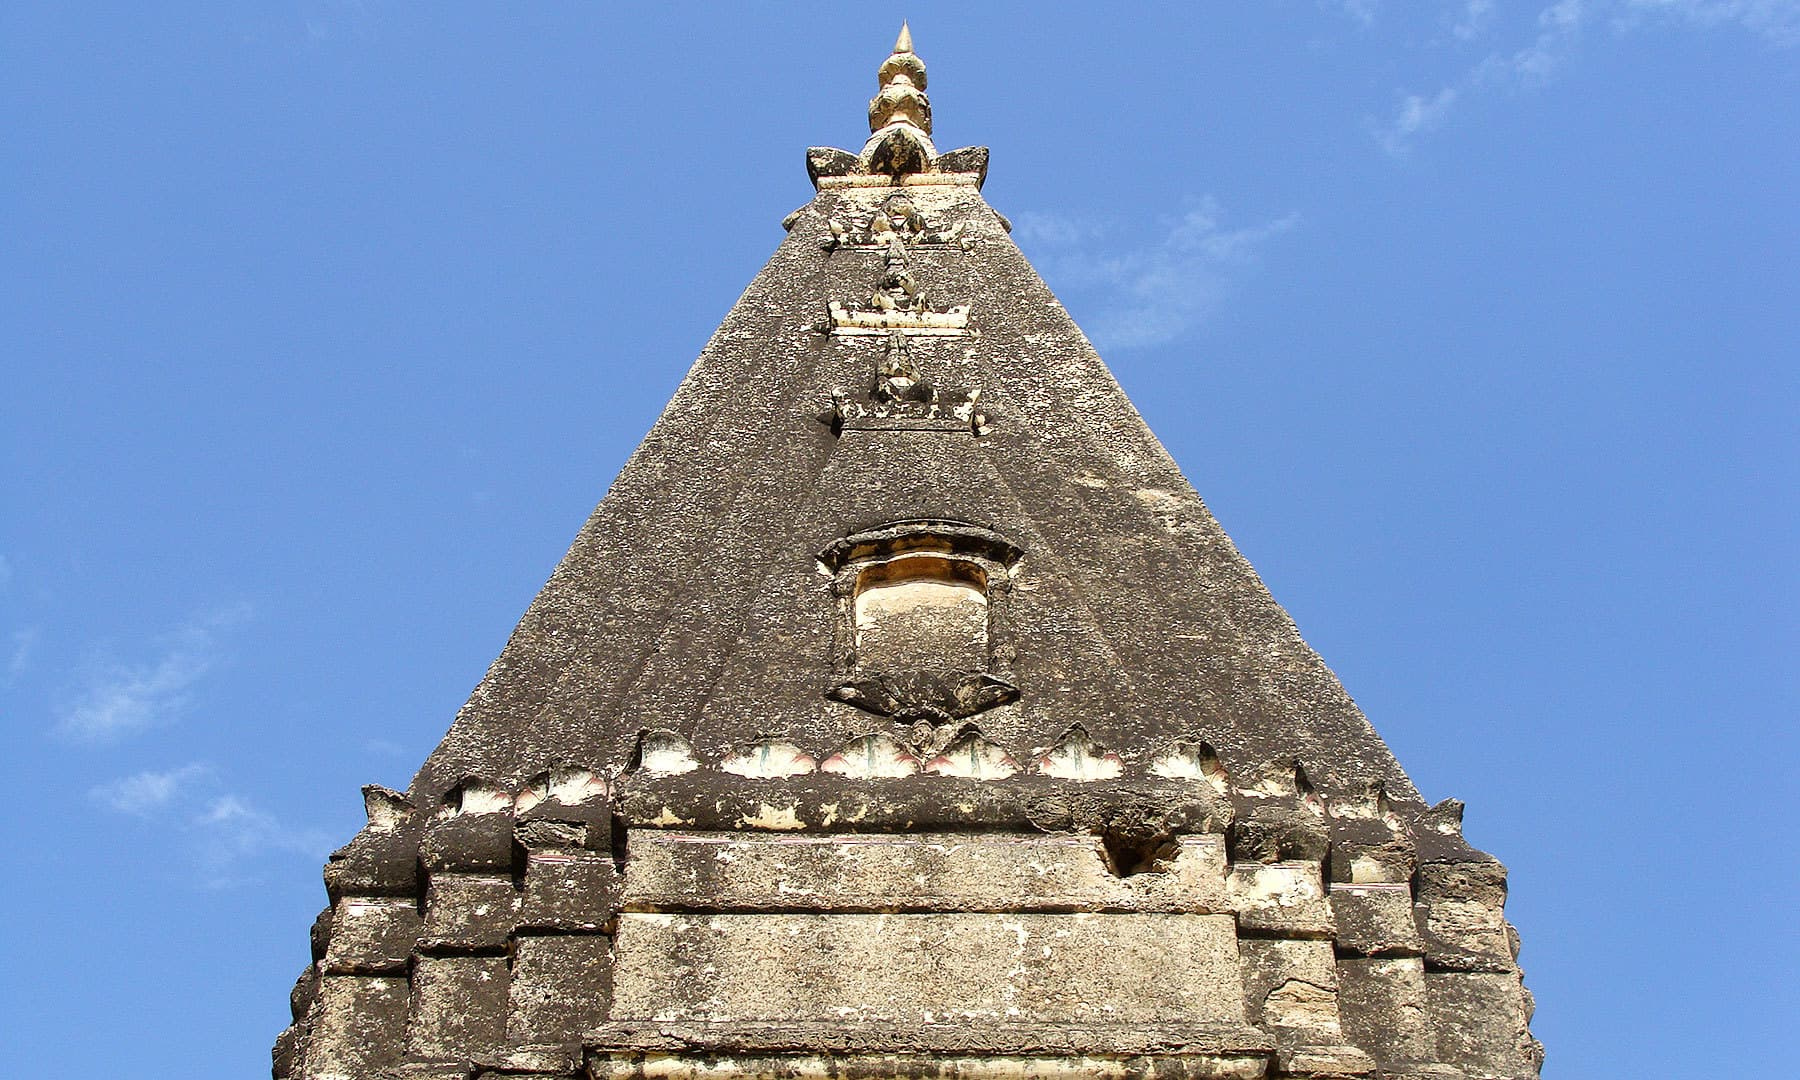 A closer view of the temple.